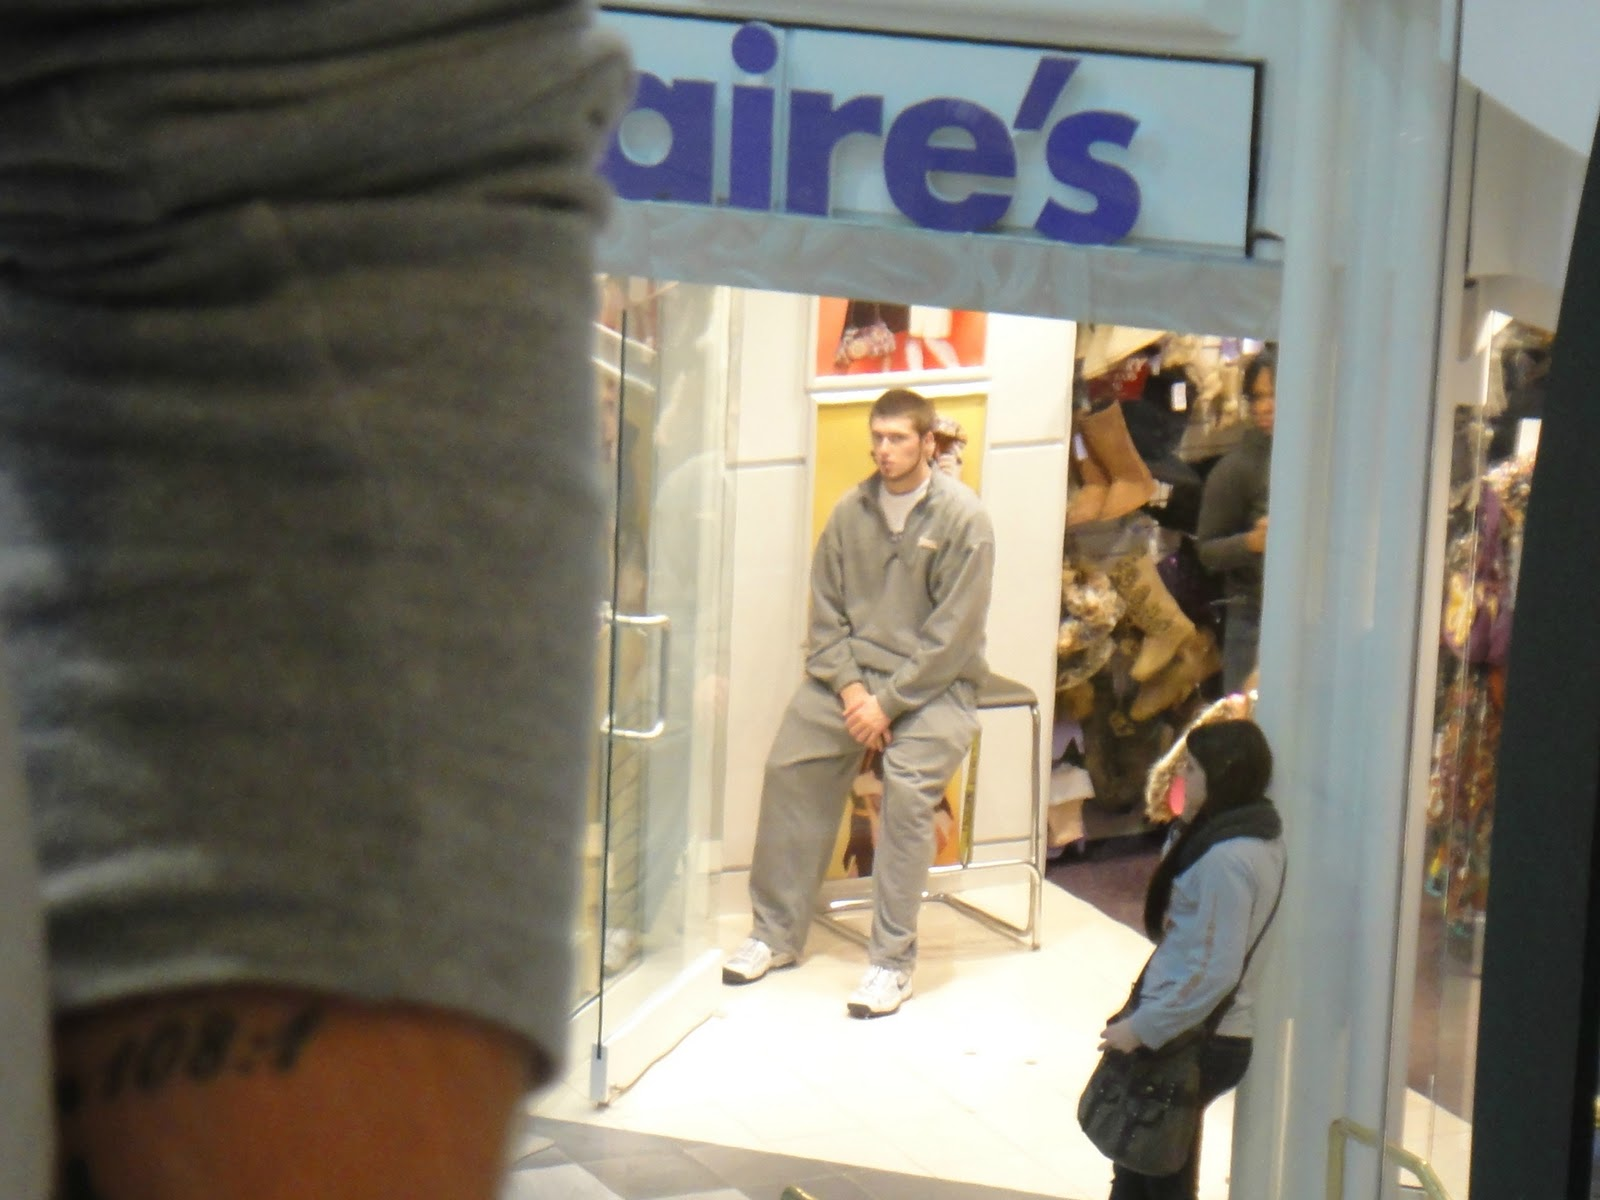 ... and seeing this man getting his ears pierced in pre-teen girl heaven: